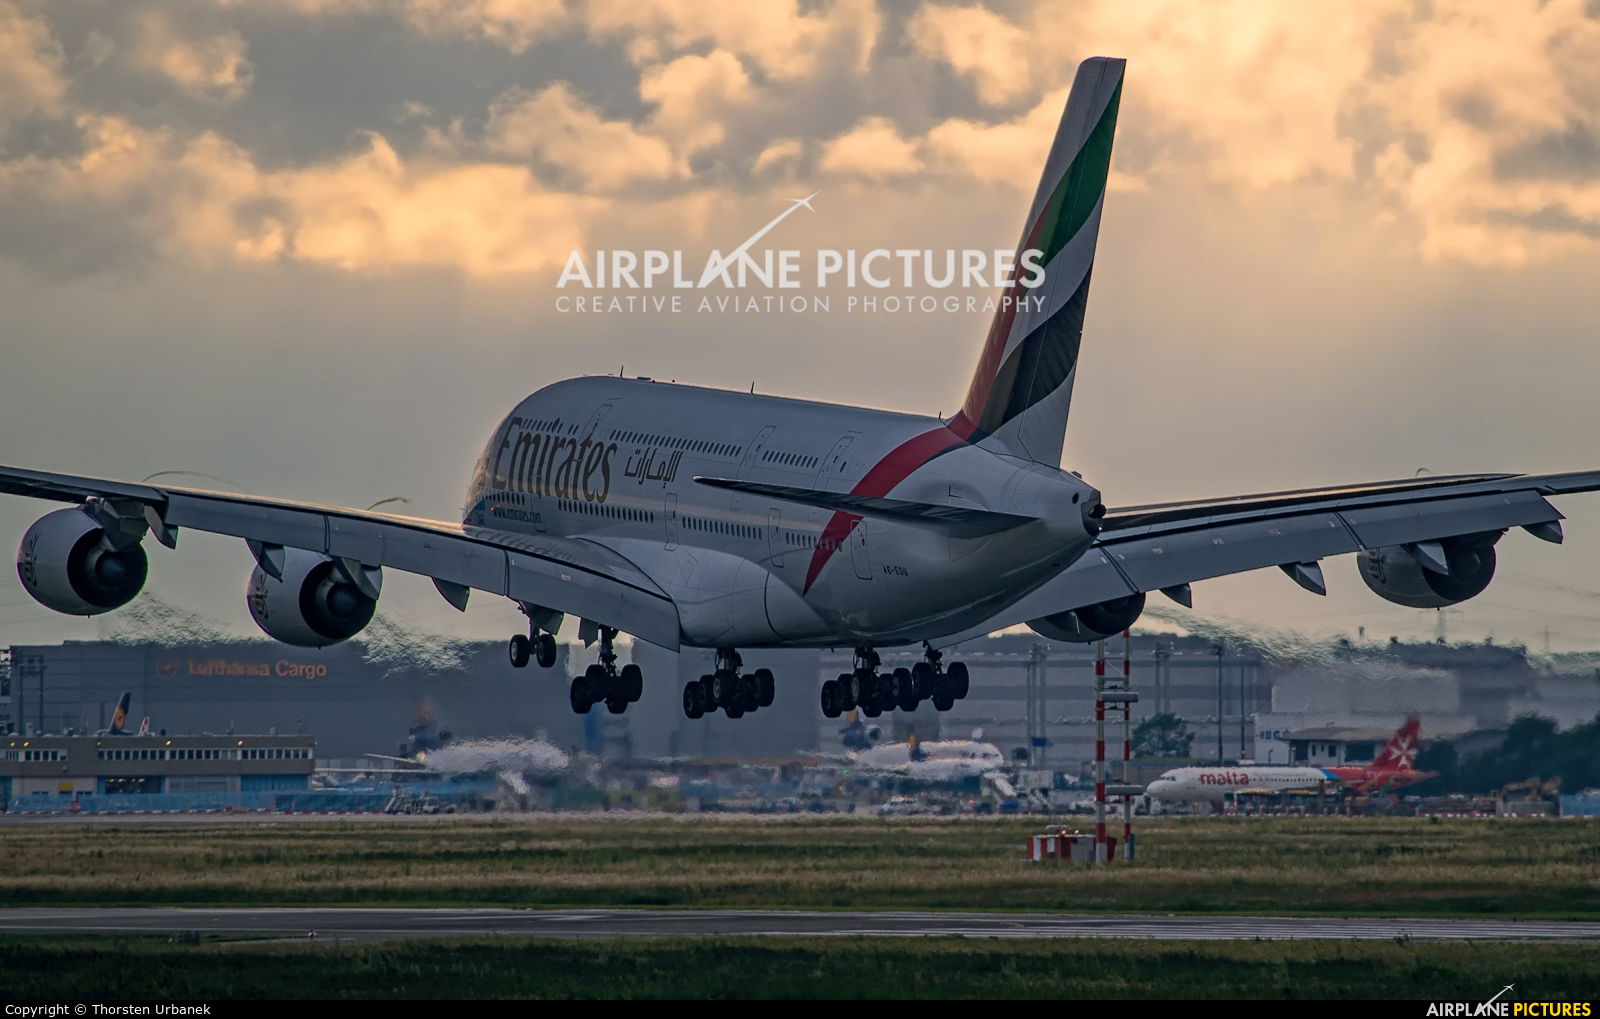 Emirates Airlines A6-EOU aircraft at Frankfurt